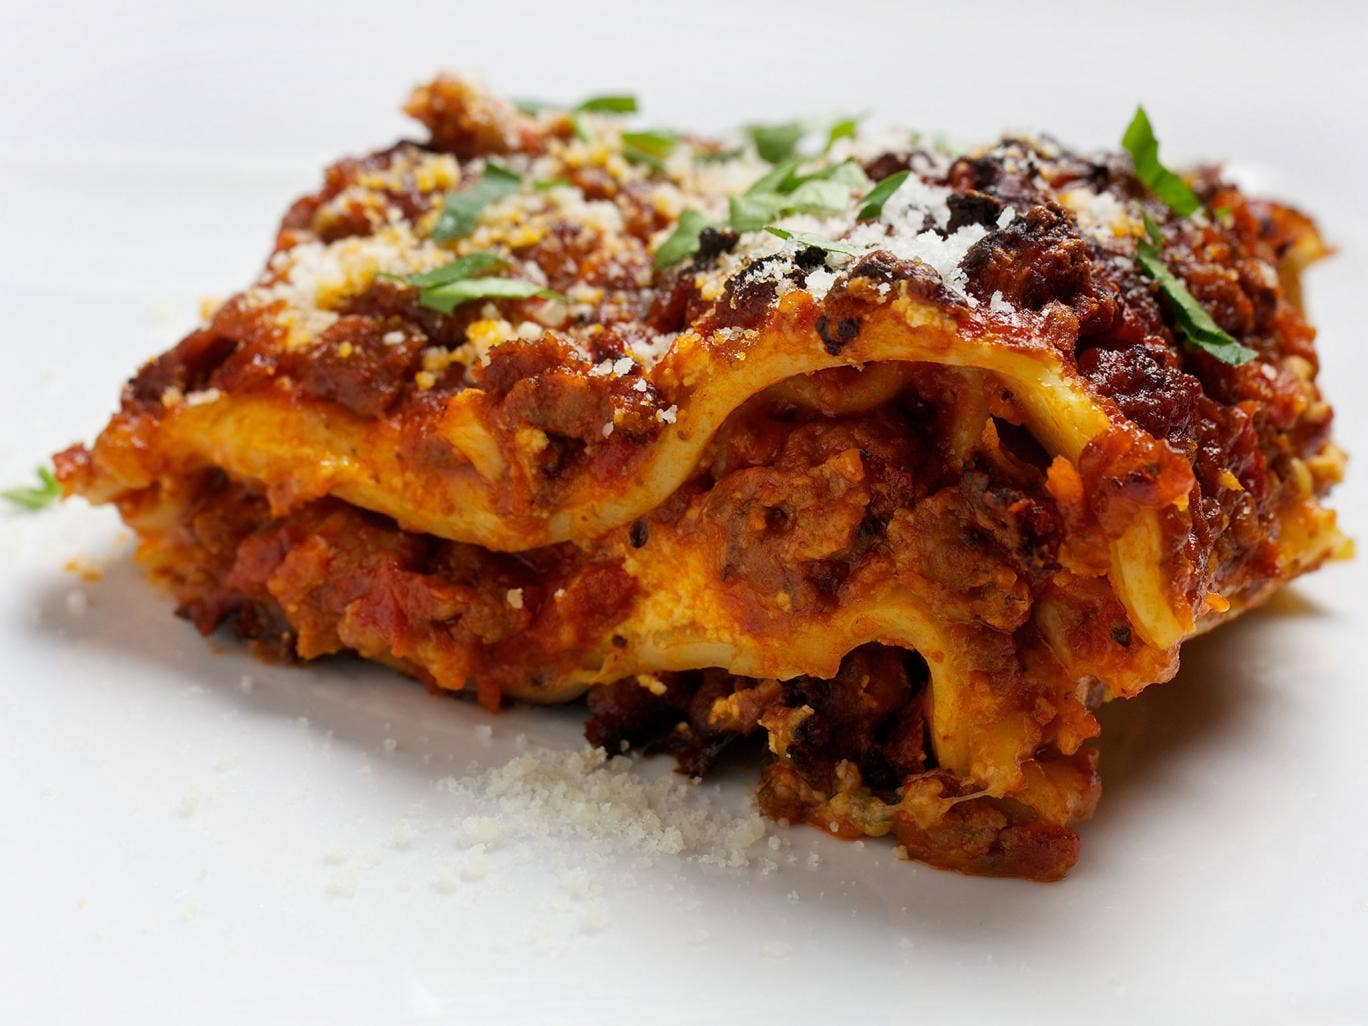 John Chandler's lasagna has reigned as the most popular recipe on AllRecipes.com for more than a decade